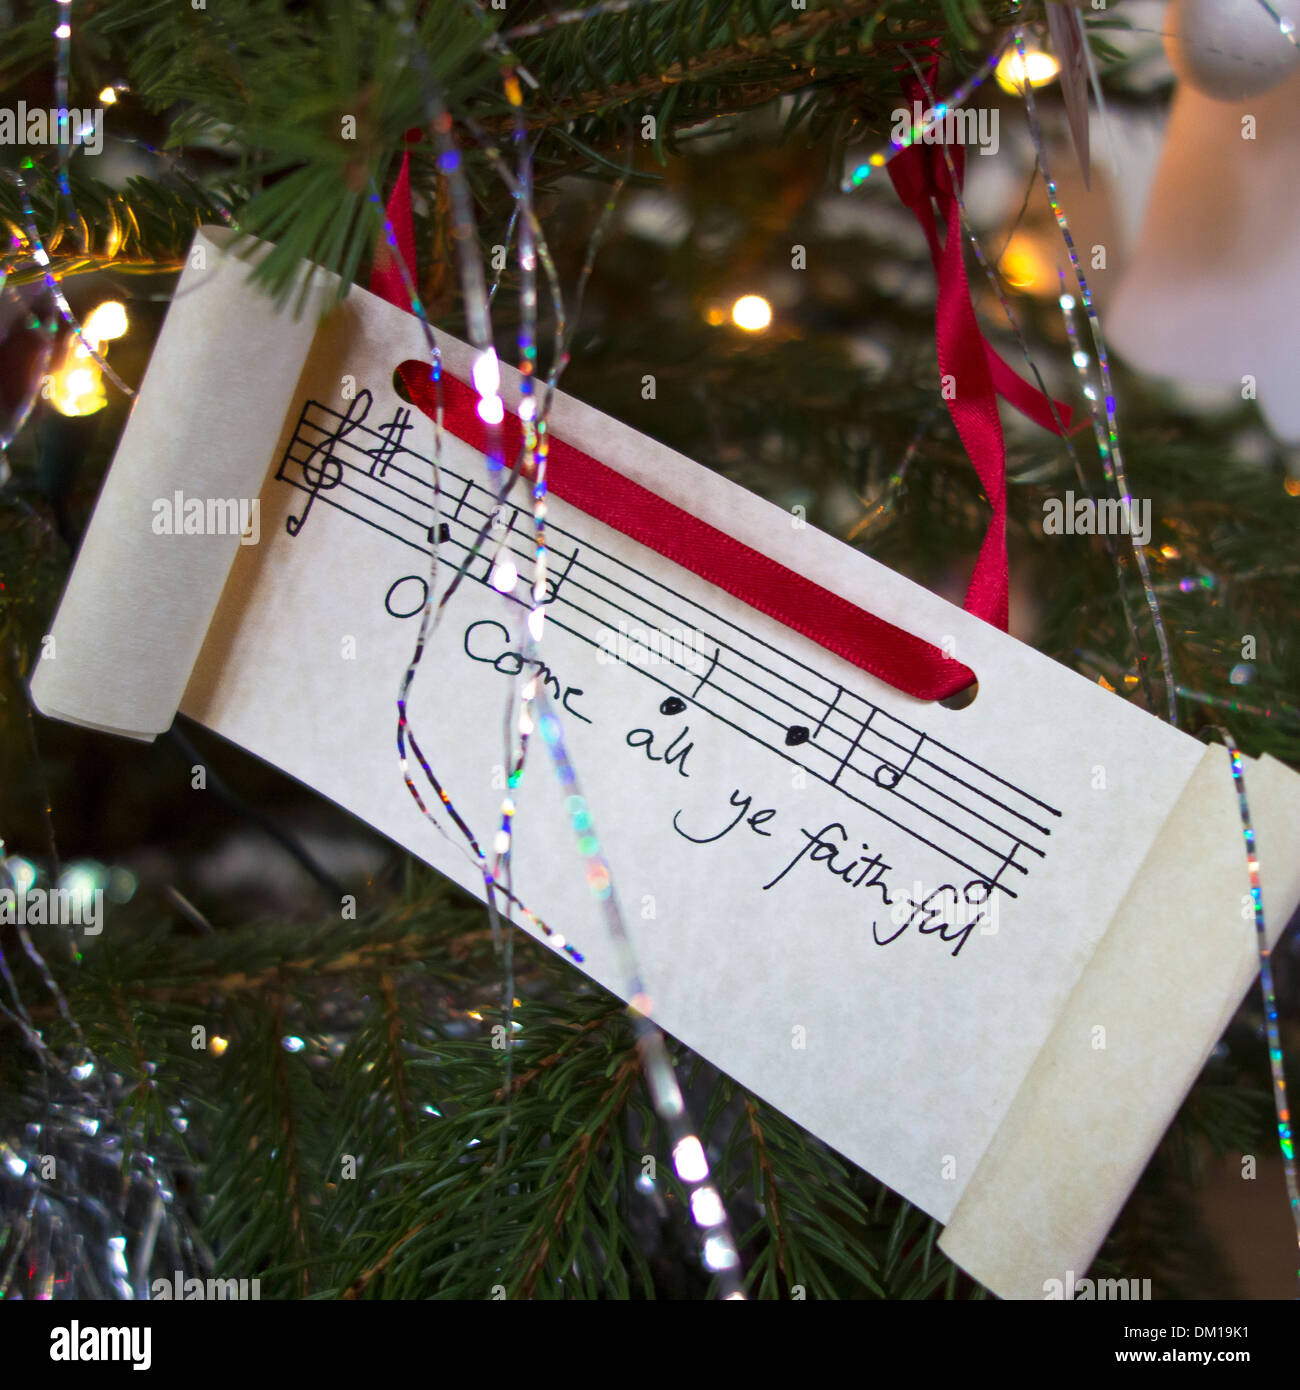 O Come All Ye Faithful: Christmas carol lyrics on a Christmas tree ...